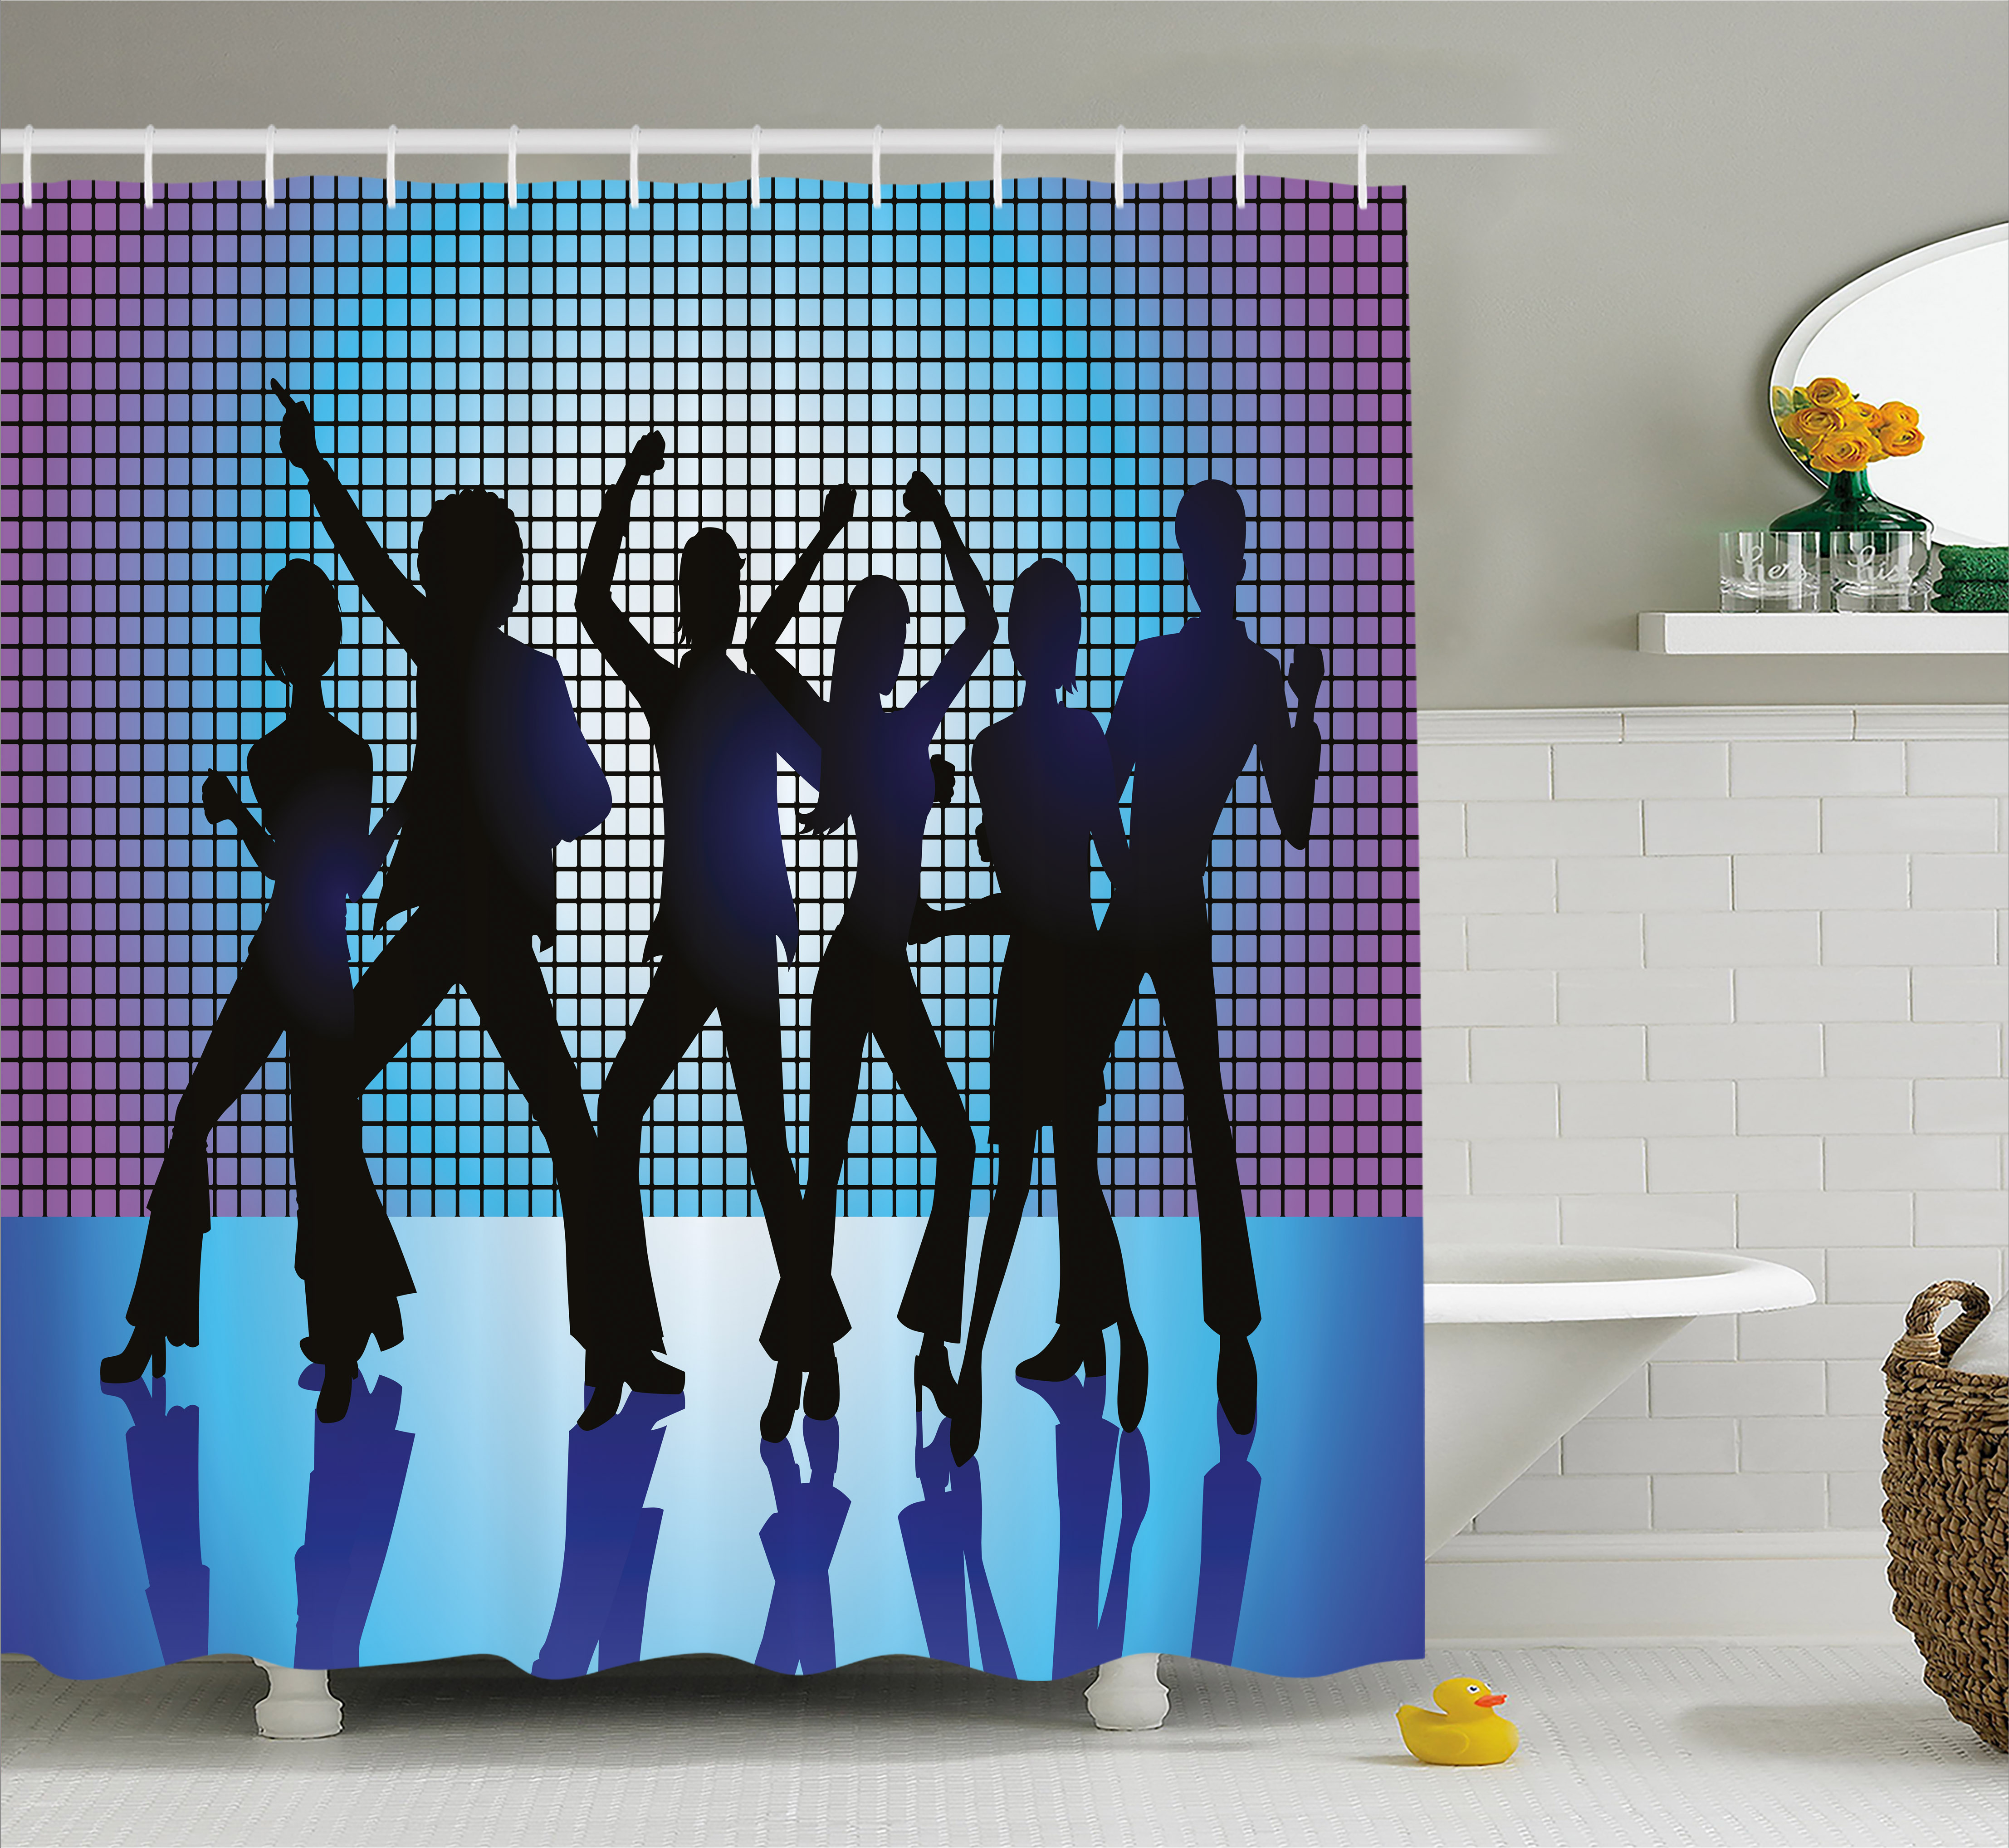 70s Party Decorations Shower Curtain, Silhouettes of Coup...